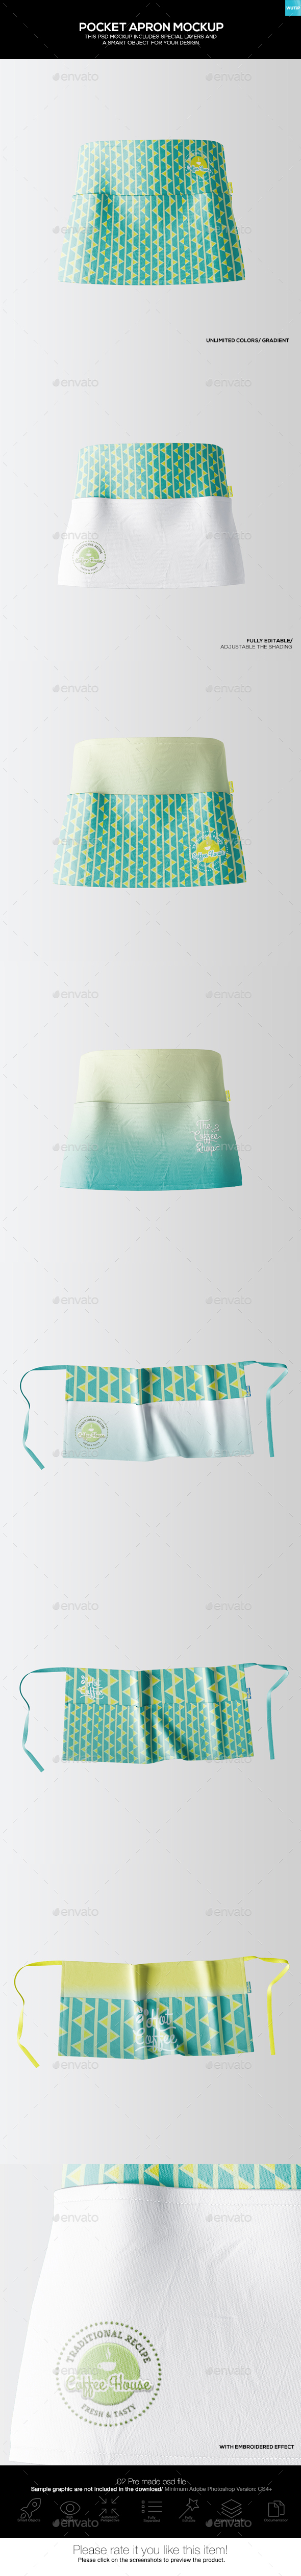 Pocket Apron Mockup - Miscellaneous Apparel